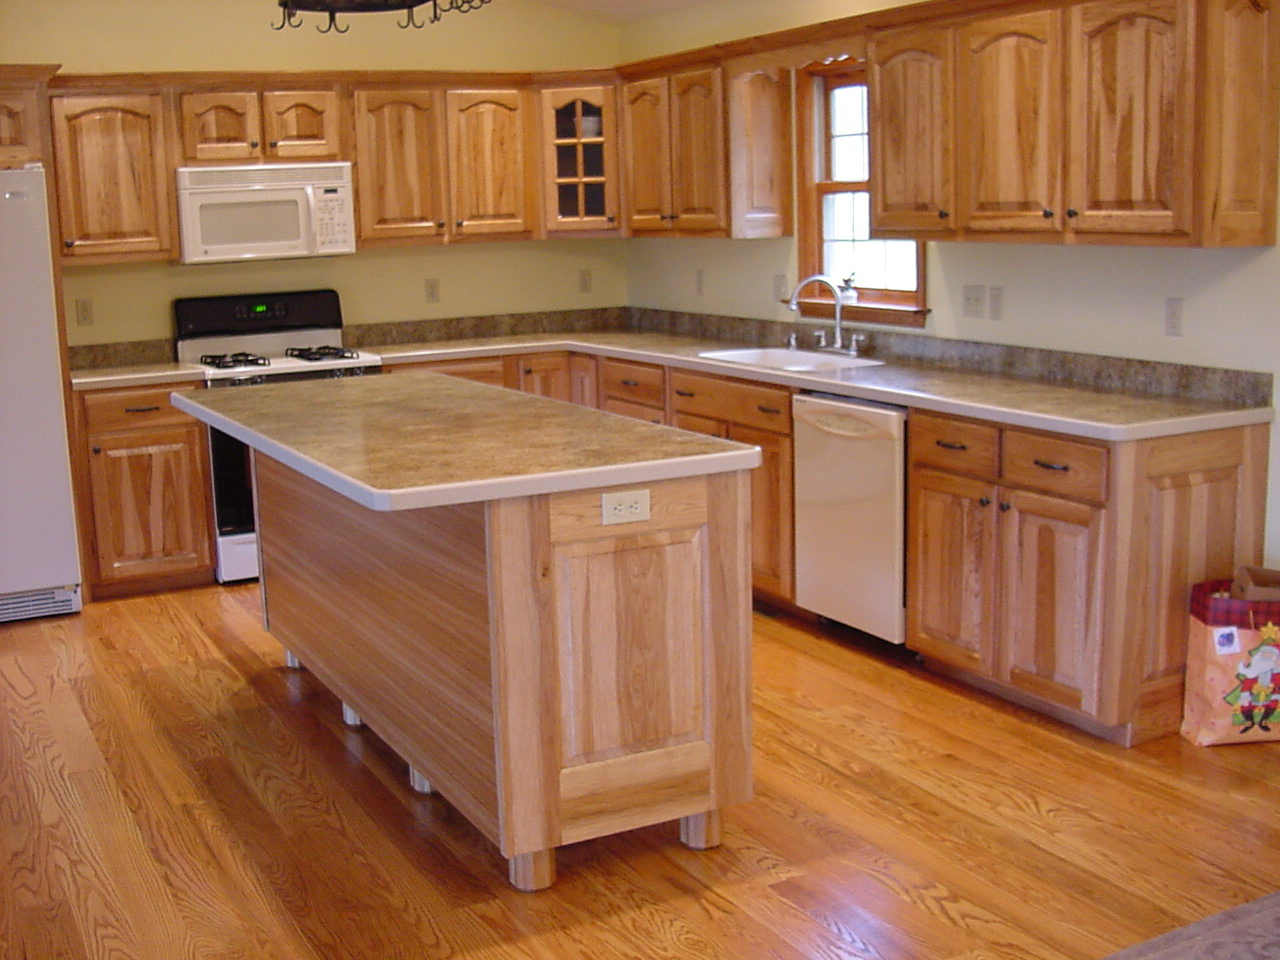 Laminate Bar Countertops : HOUSE CONSTRUCTION IN INDIA: KITCHENS COUNTERTOP MATERIALS